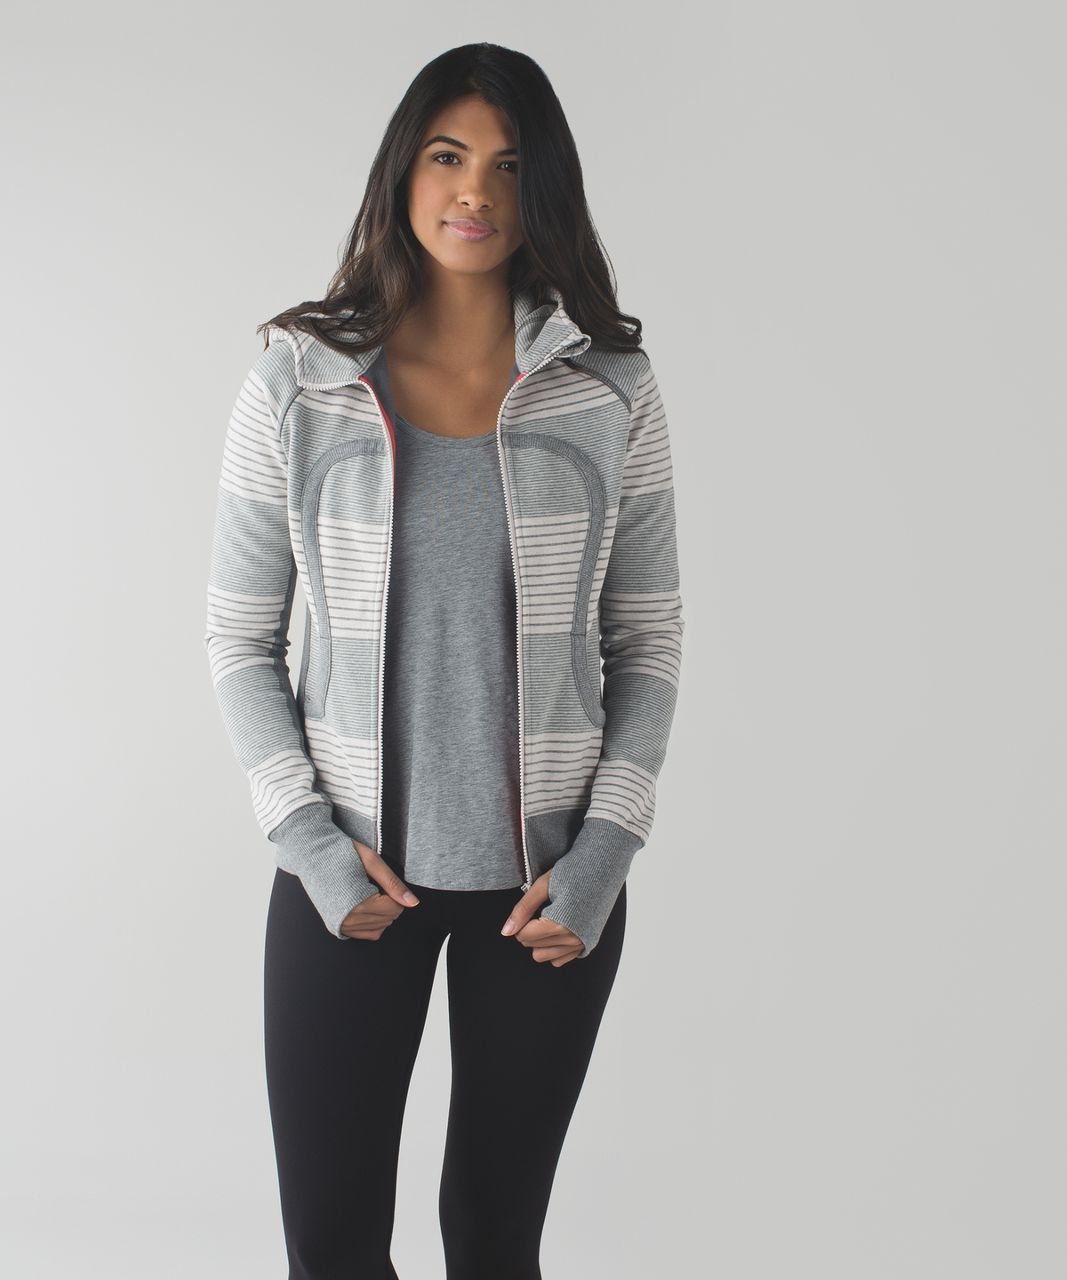 Lululemon Scuba Hoodie II - Double Vision Stripe Heathered Medium Grey Heathered Dune / Slate